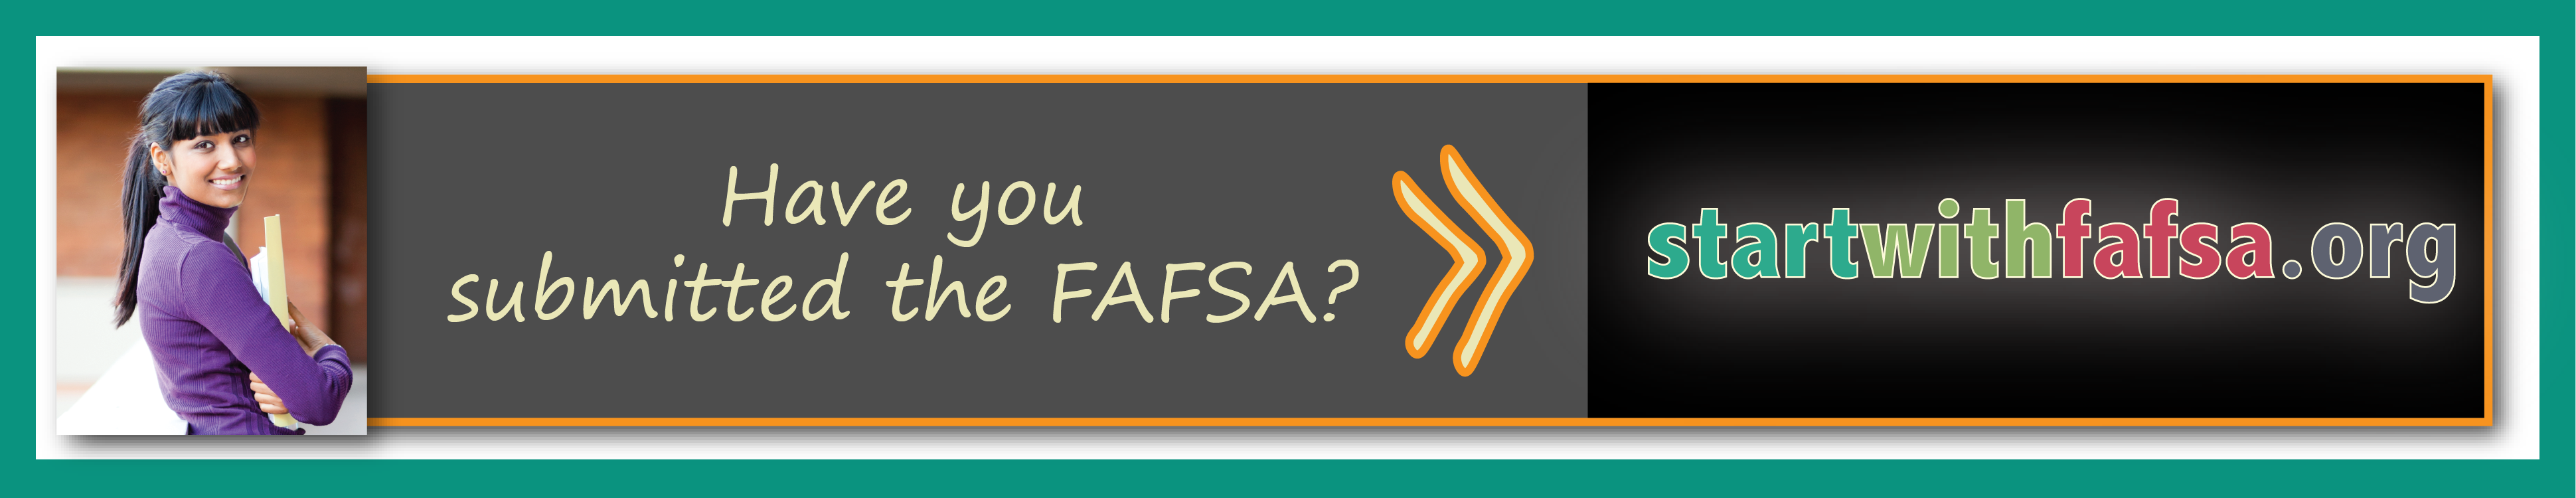 StartWithFAFSA.org opens in a new tab